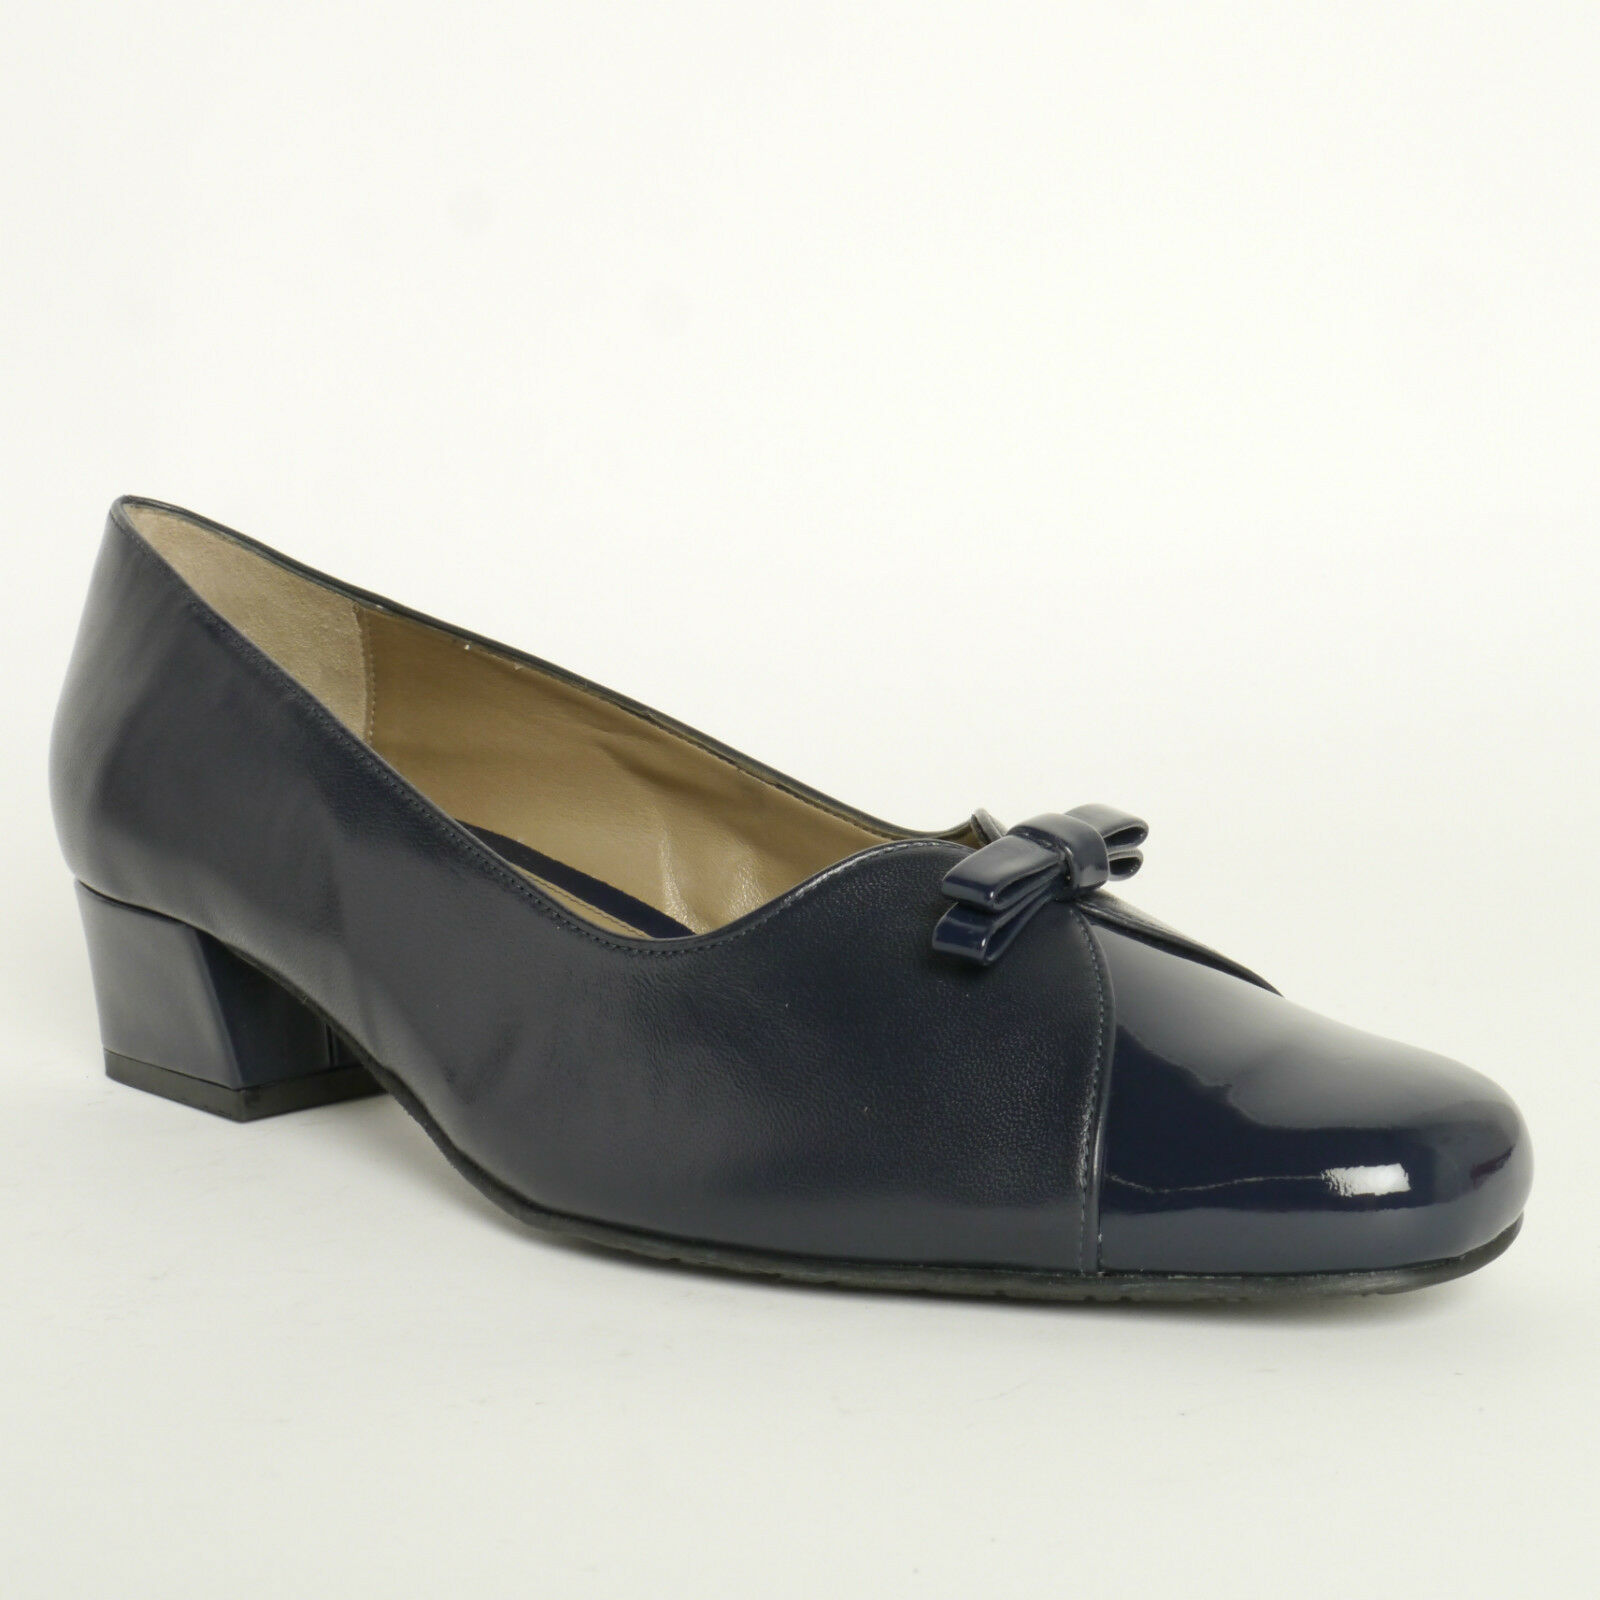 Van Dal Shoes Daybreak Court Shoes In Navy With Patent Toe Detail RRP £70